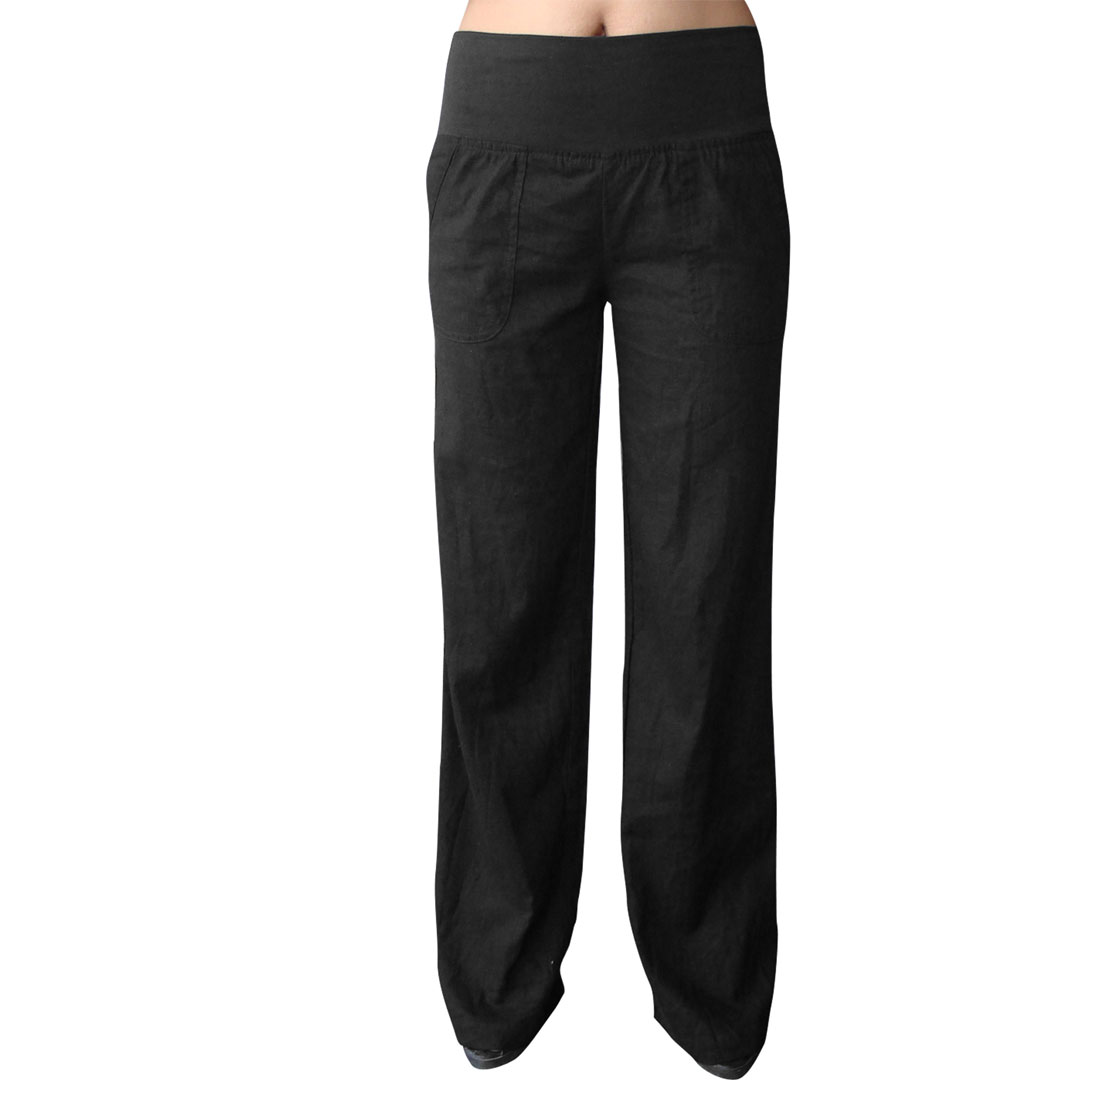 Summer Loose Casual Pure Black Straight Pants Trousers S for Ladies